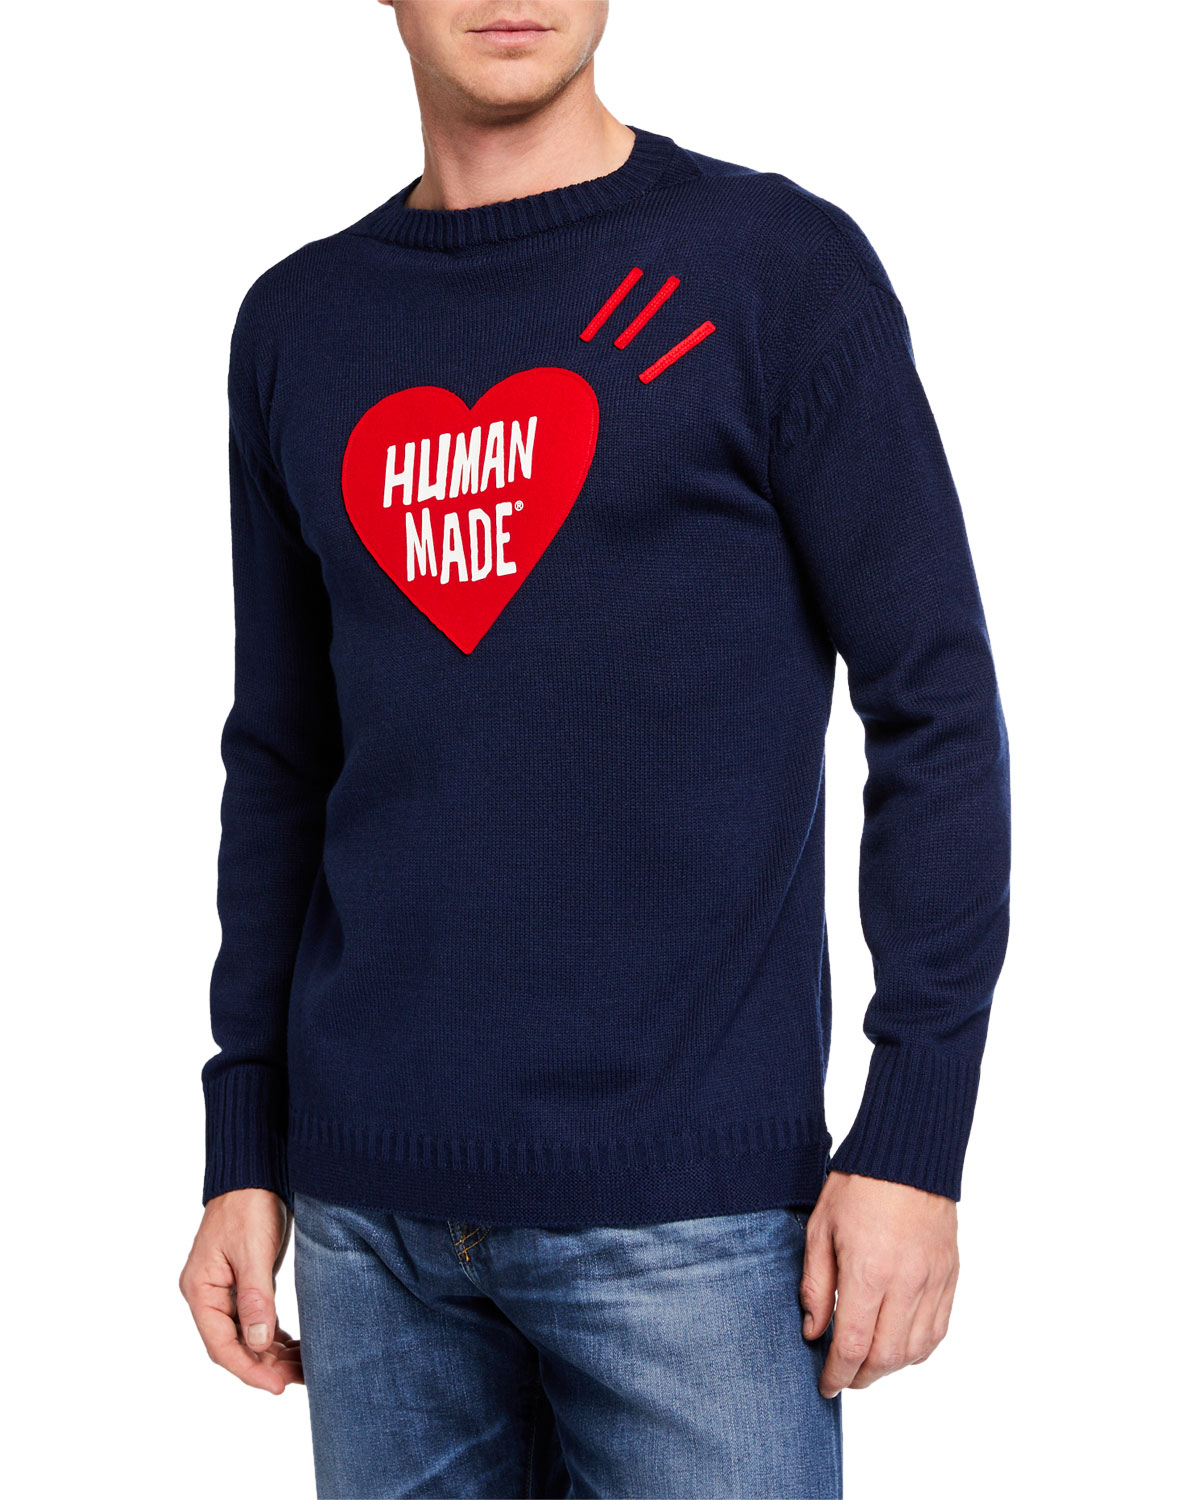 HUMAN MADE Men'S Heart Knit Sweater in Navy